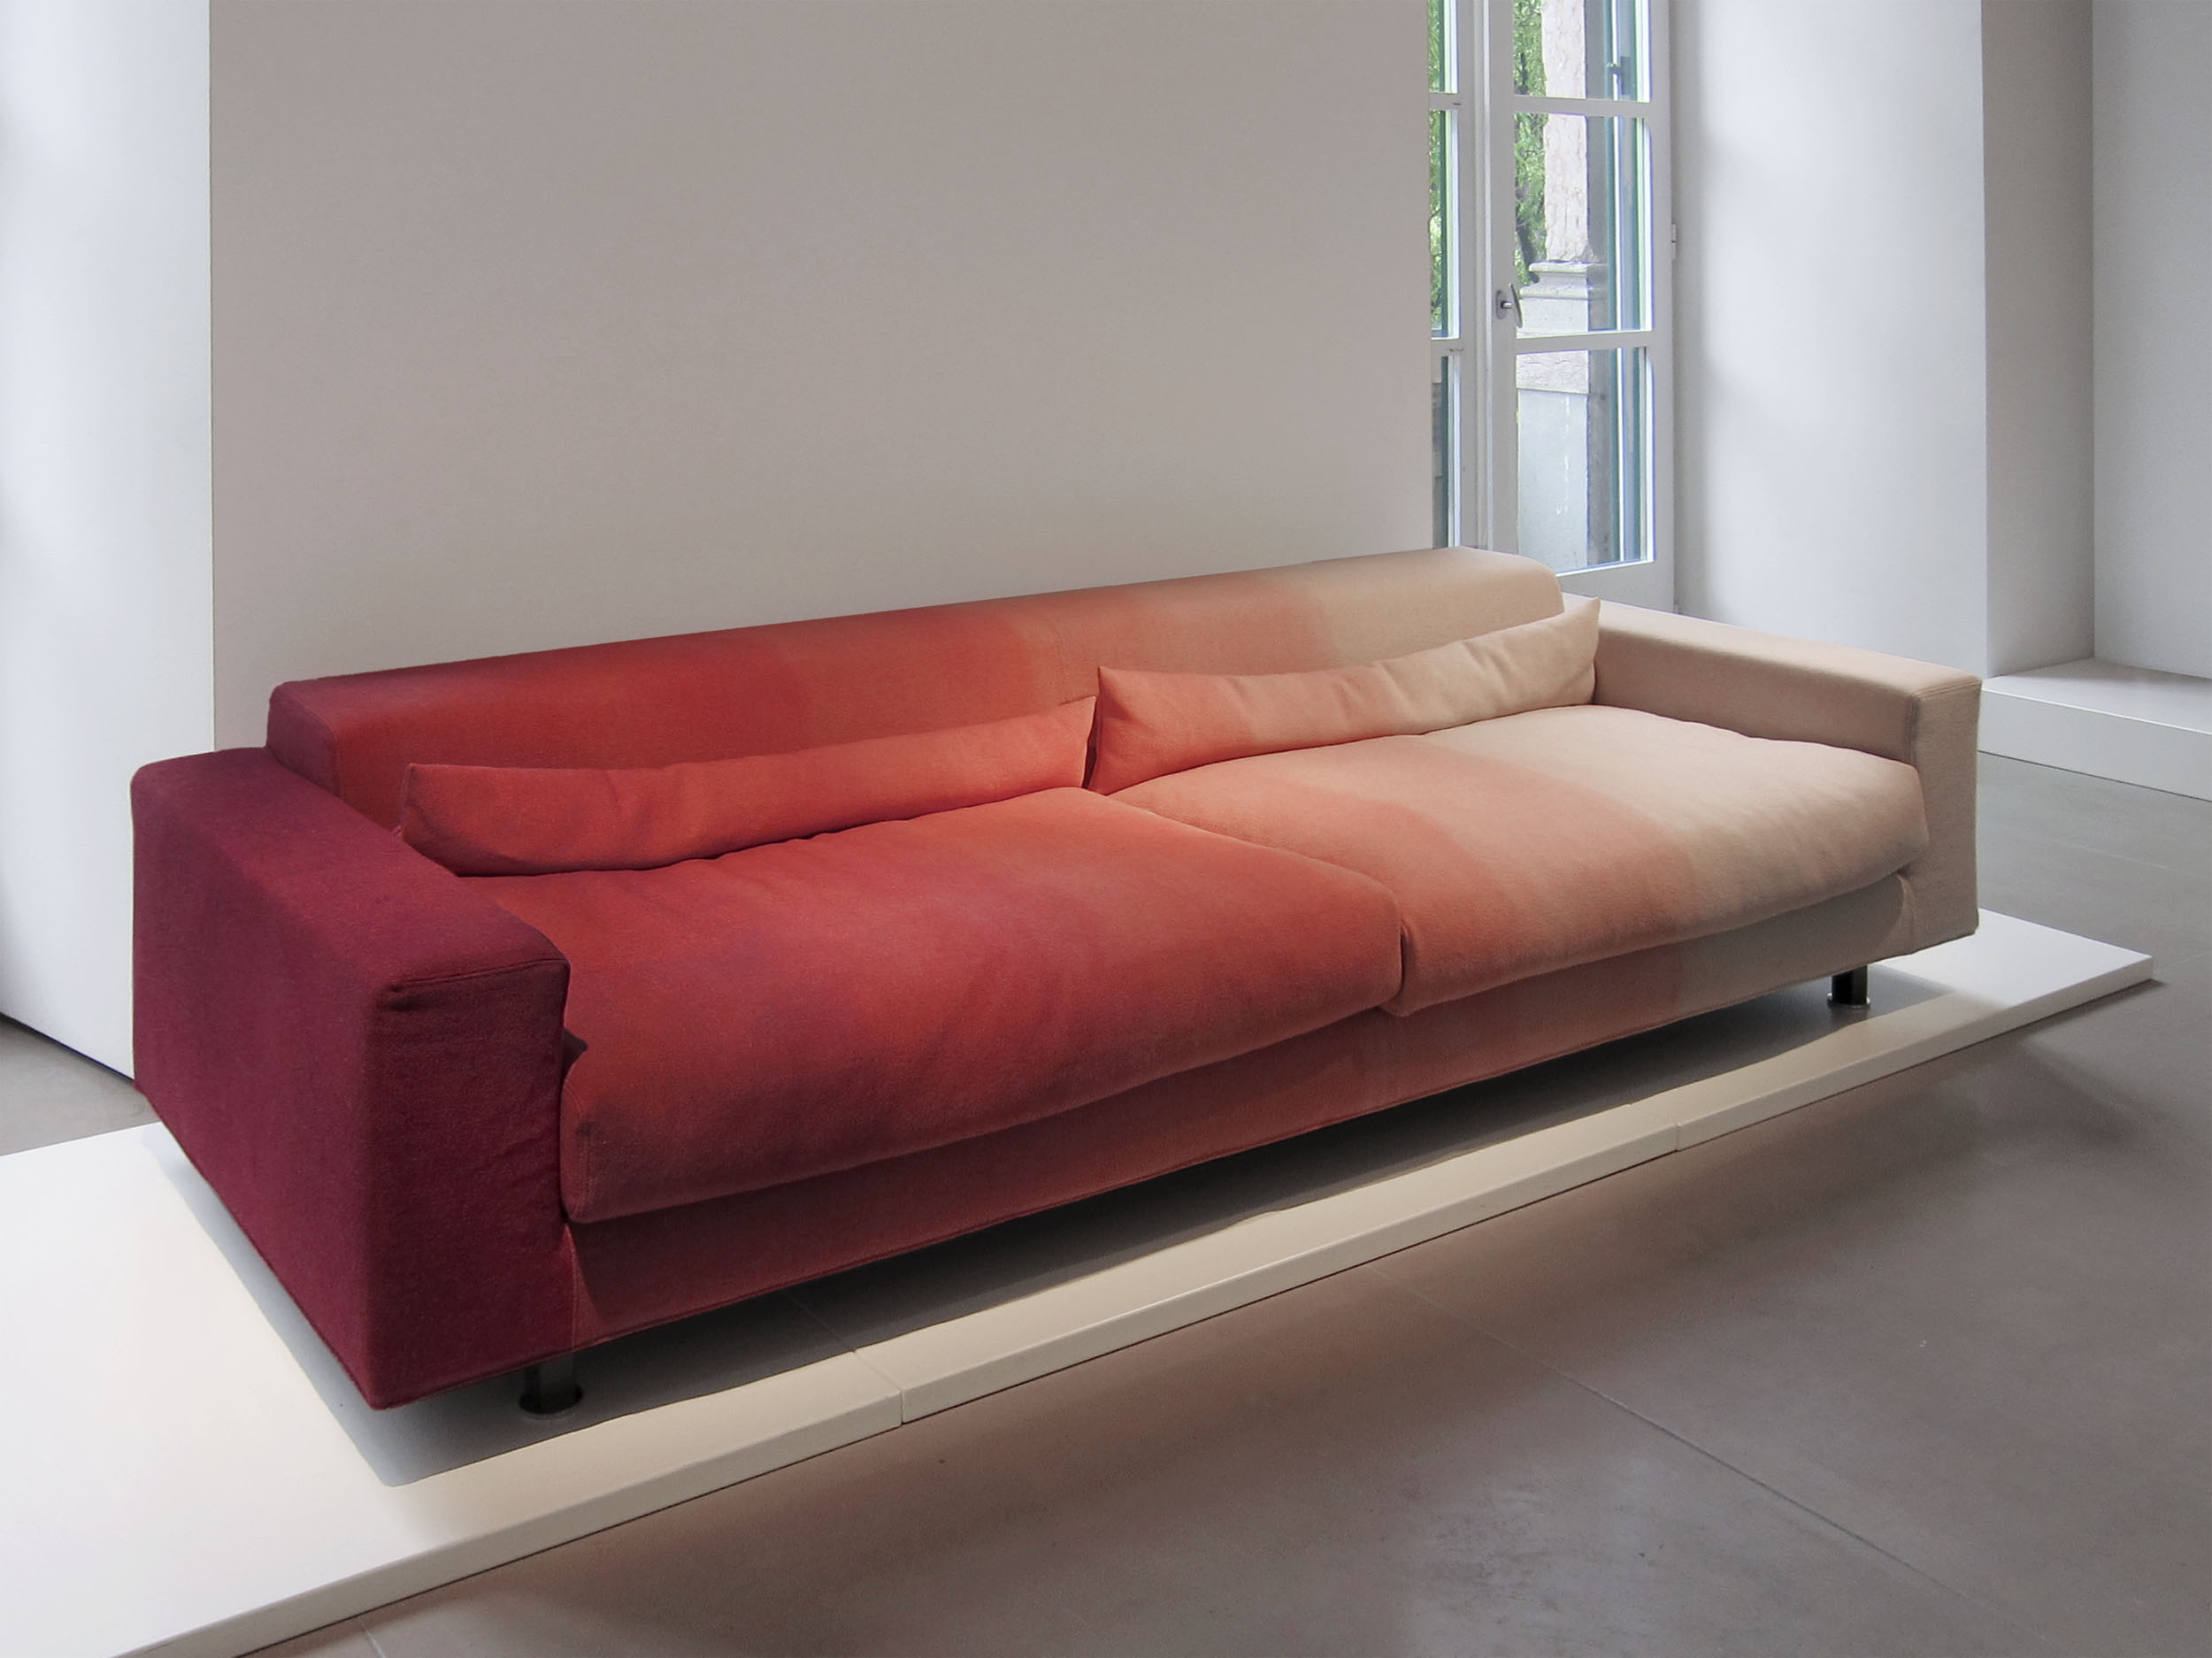 A sofa that has been upholstered with dip dyed fabric from intense to red to natural wool